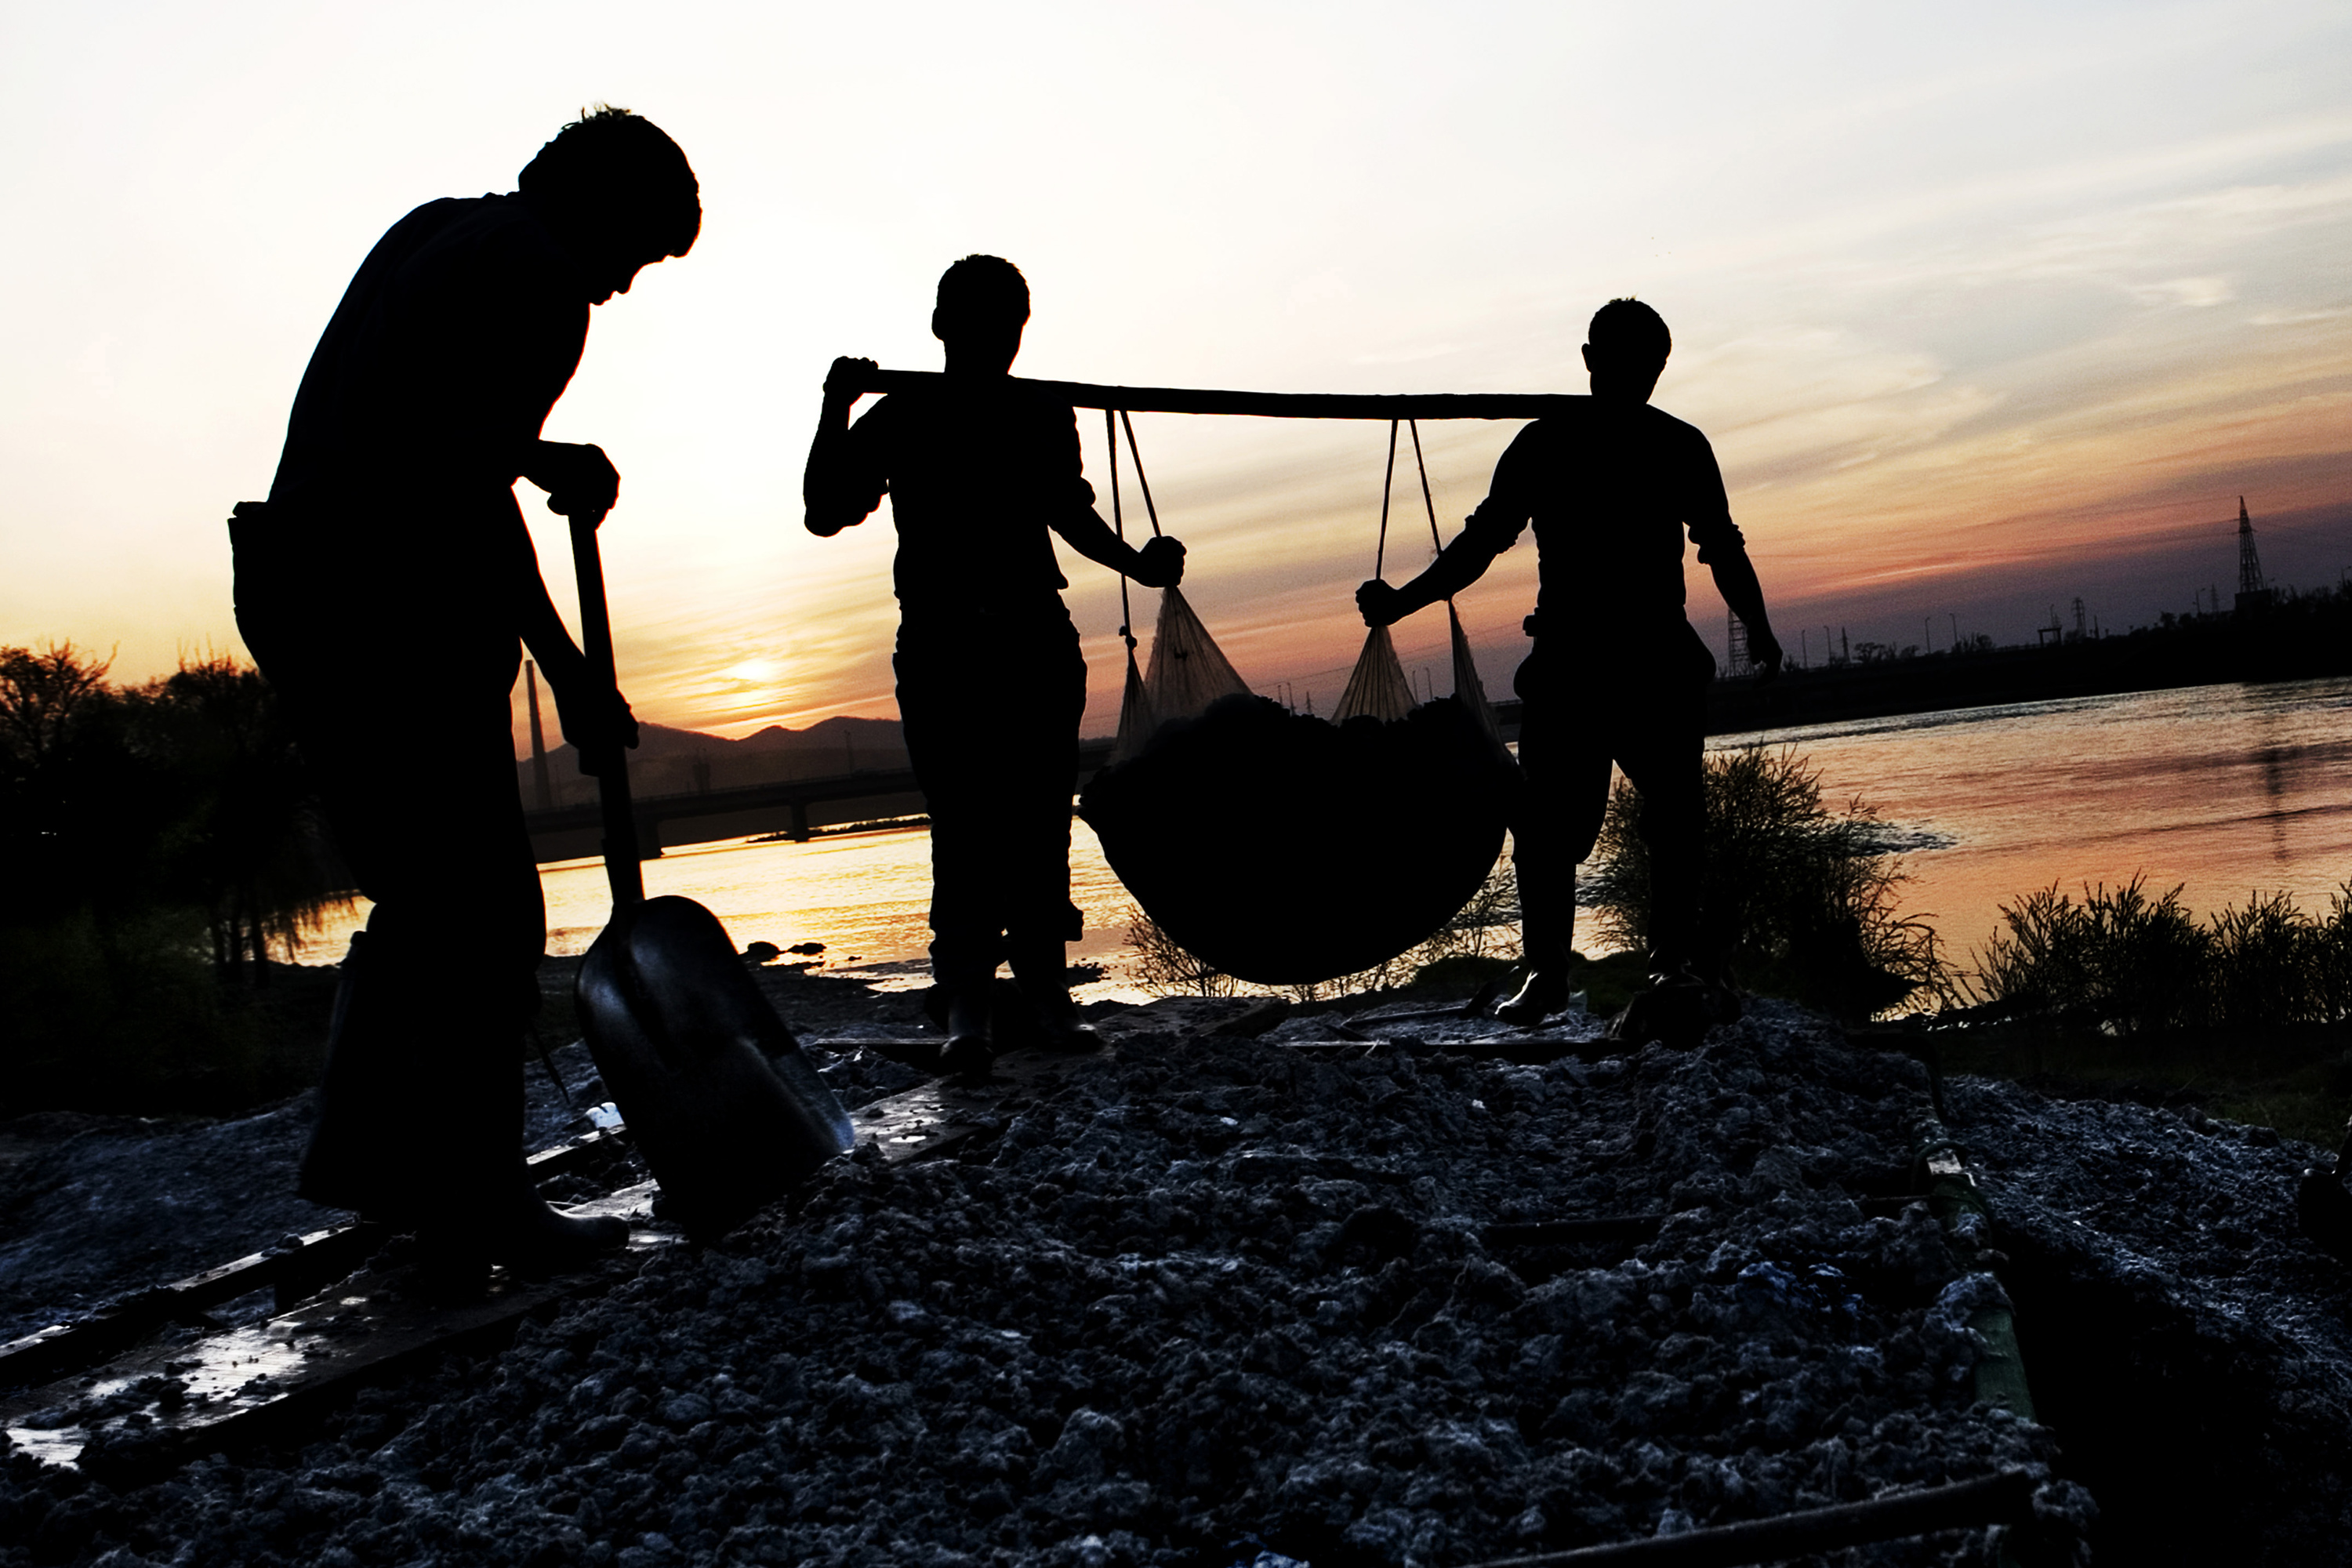 As dusk settles on the Songhua River two brothers of the migrant family carries yet another load of paper bits onto the truck. Each worker gets approximately 3 dollars for a truckload. Christian Als / GraziaNeri